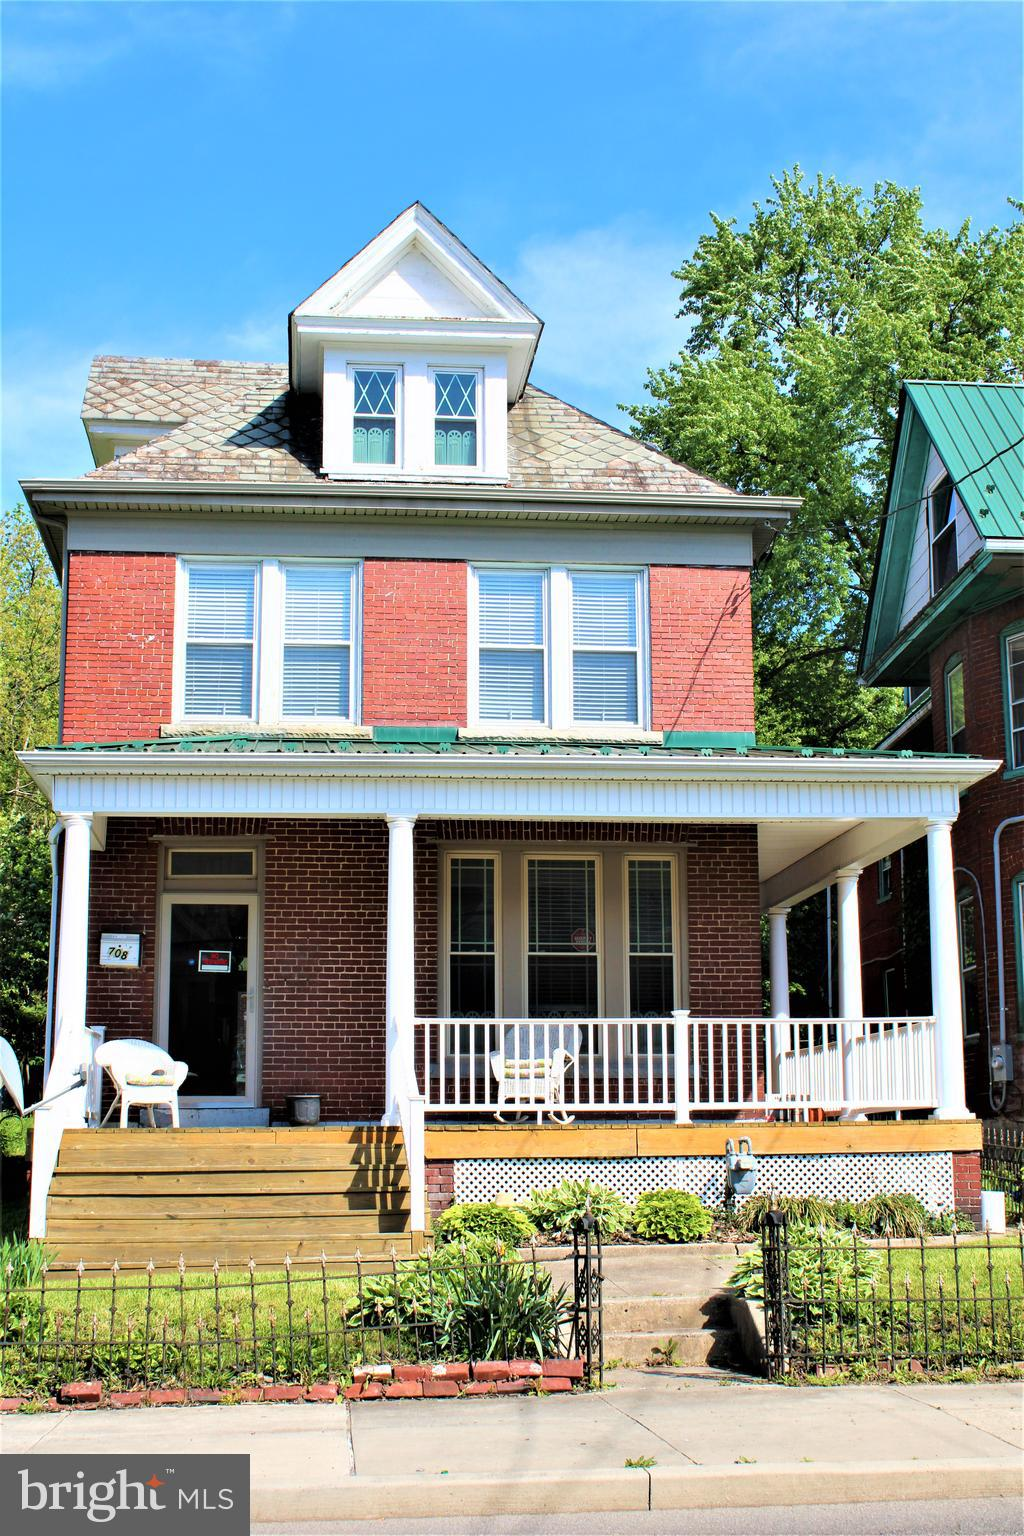 BEAUTIFUL ORNATE WOODWORK - POCKET DOORS  - CRAFTSMANSHIP OF YEARS GONE BY - GAS FIREPLACE - NICE CO